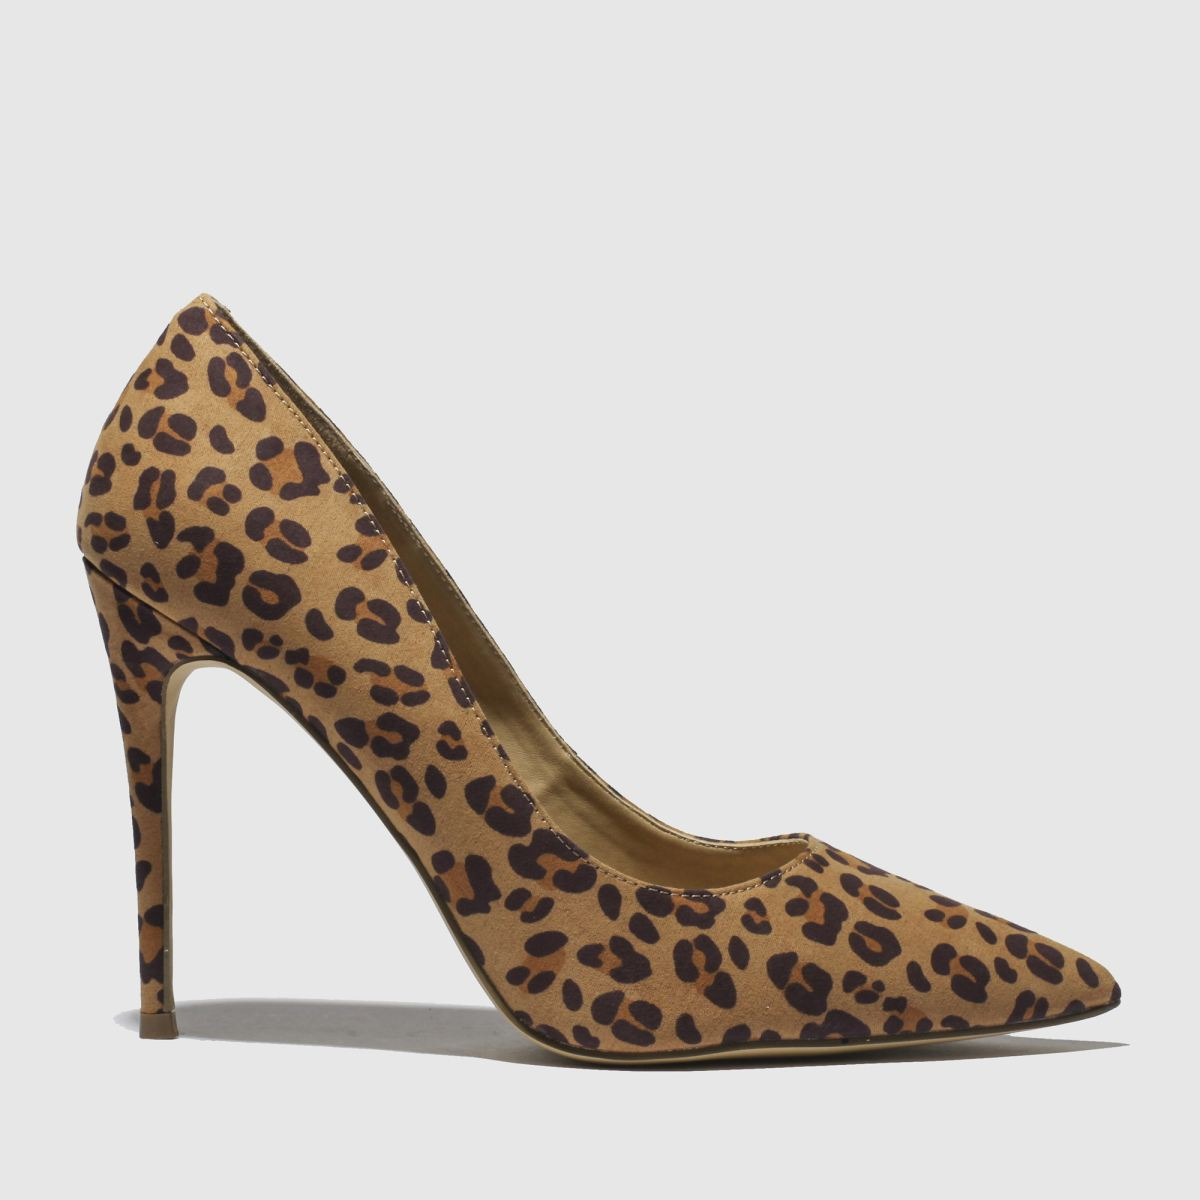 Schuh Brown & Tan Flirty High Heels